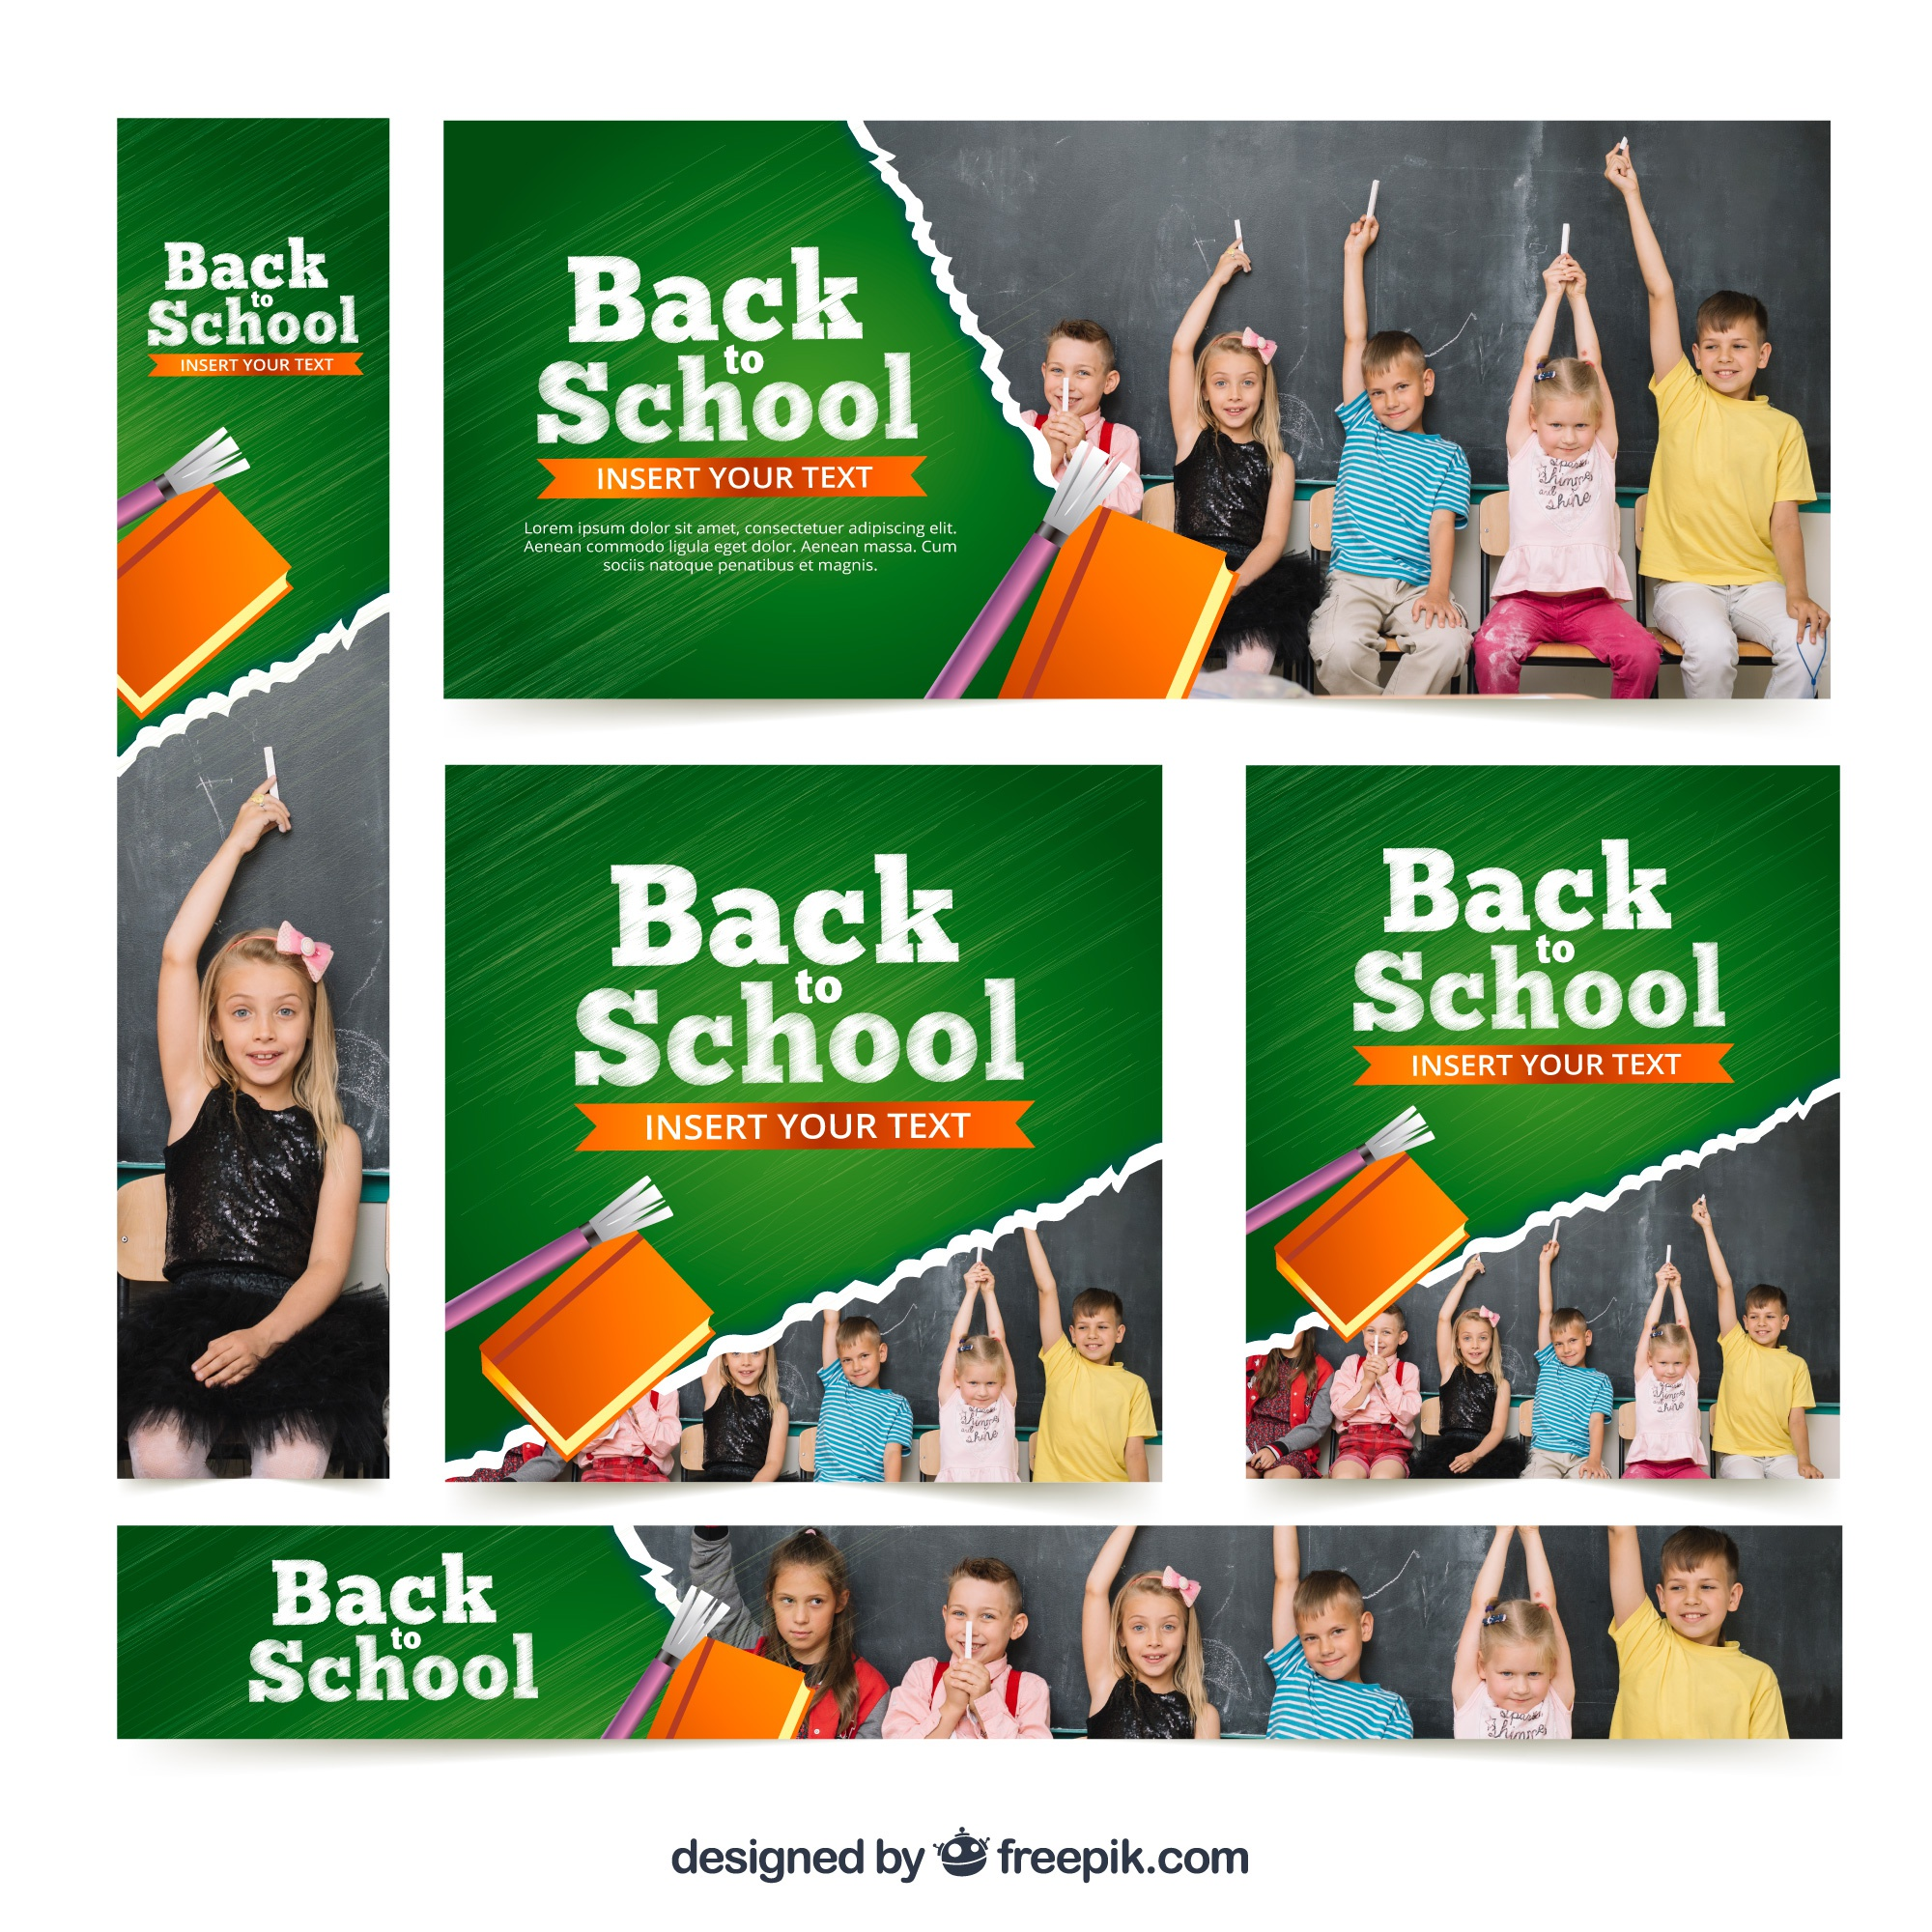 Back to school banners with photos